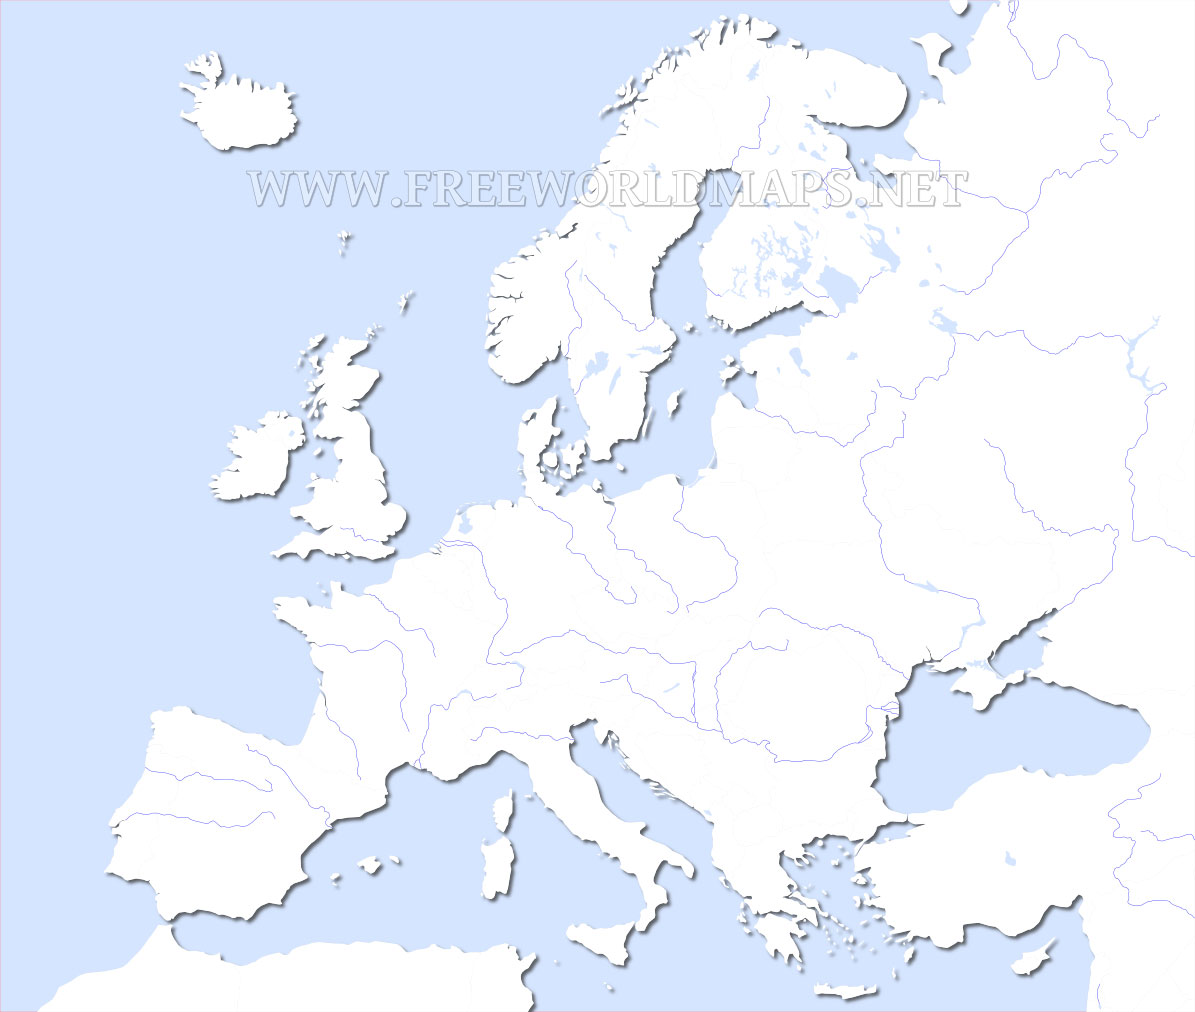 Europe Physical Map Freeworldmaps